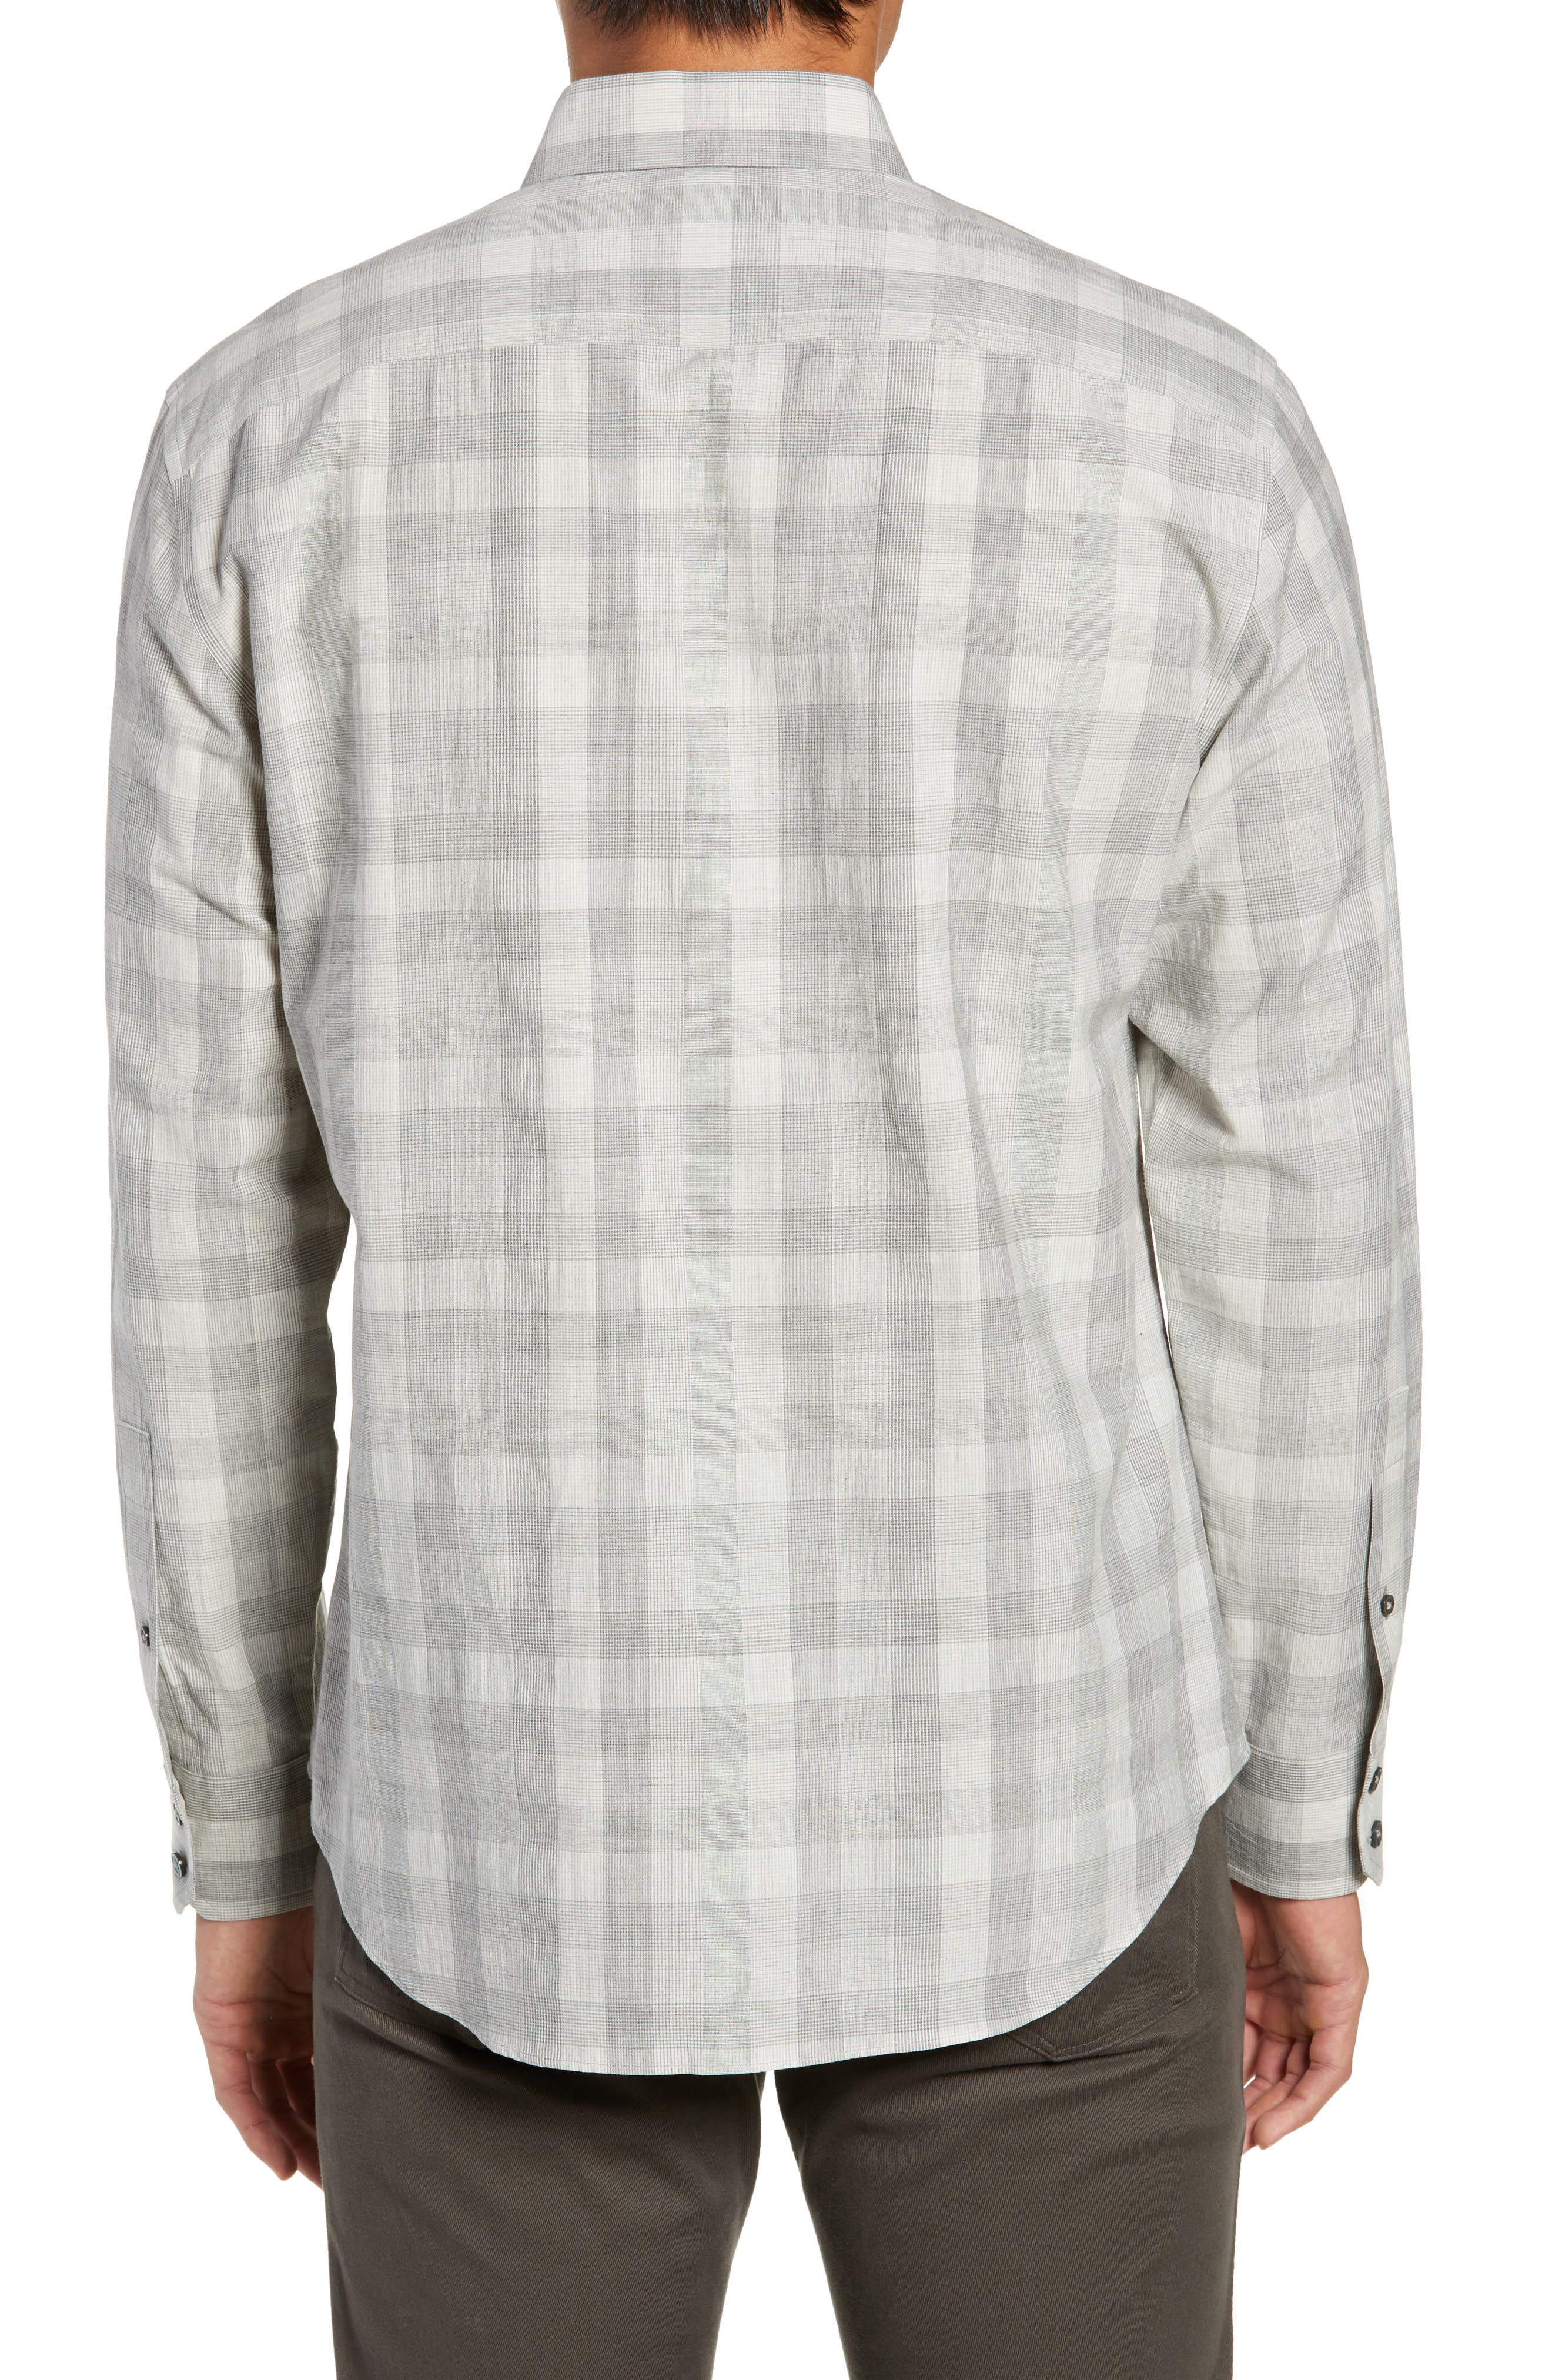 Minch Regular Fit Sport Shirt,                             Alternate thumbnail 3, color,                             050